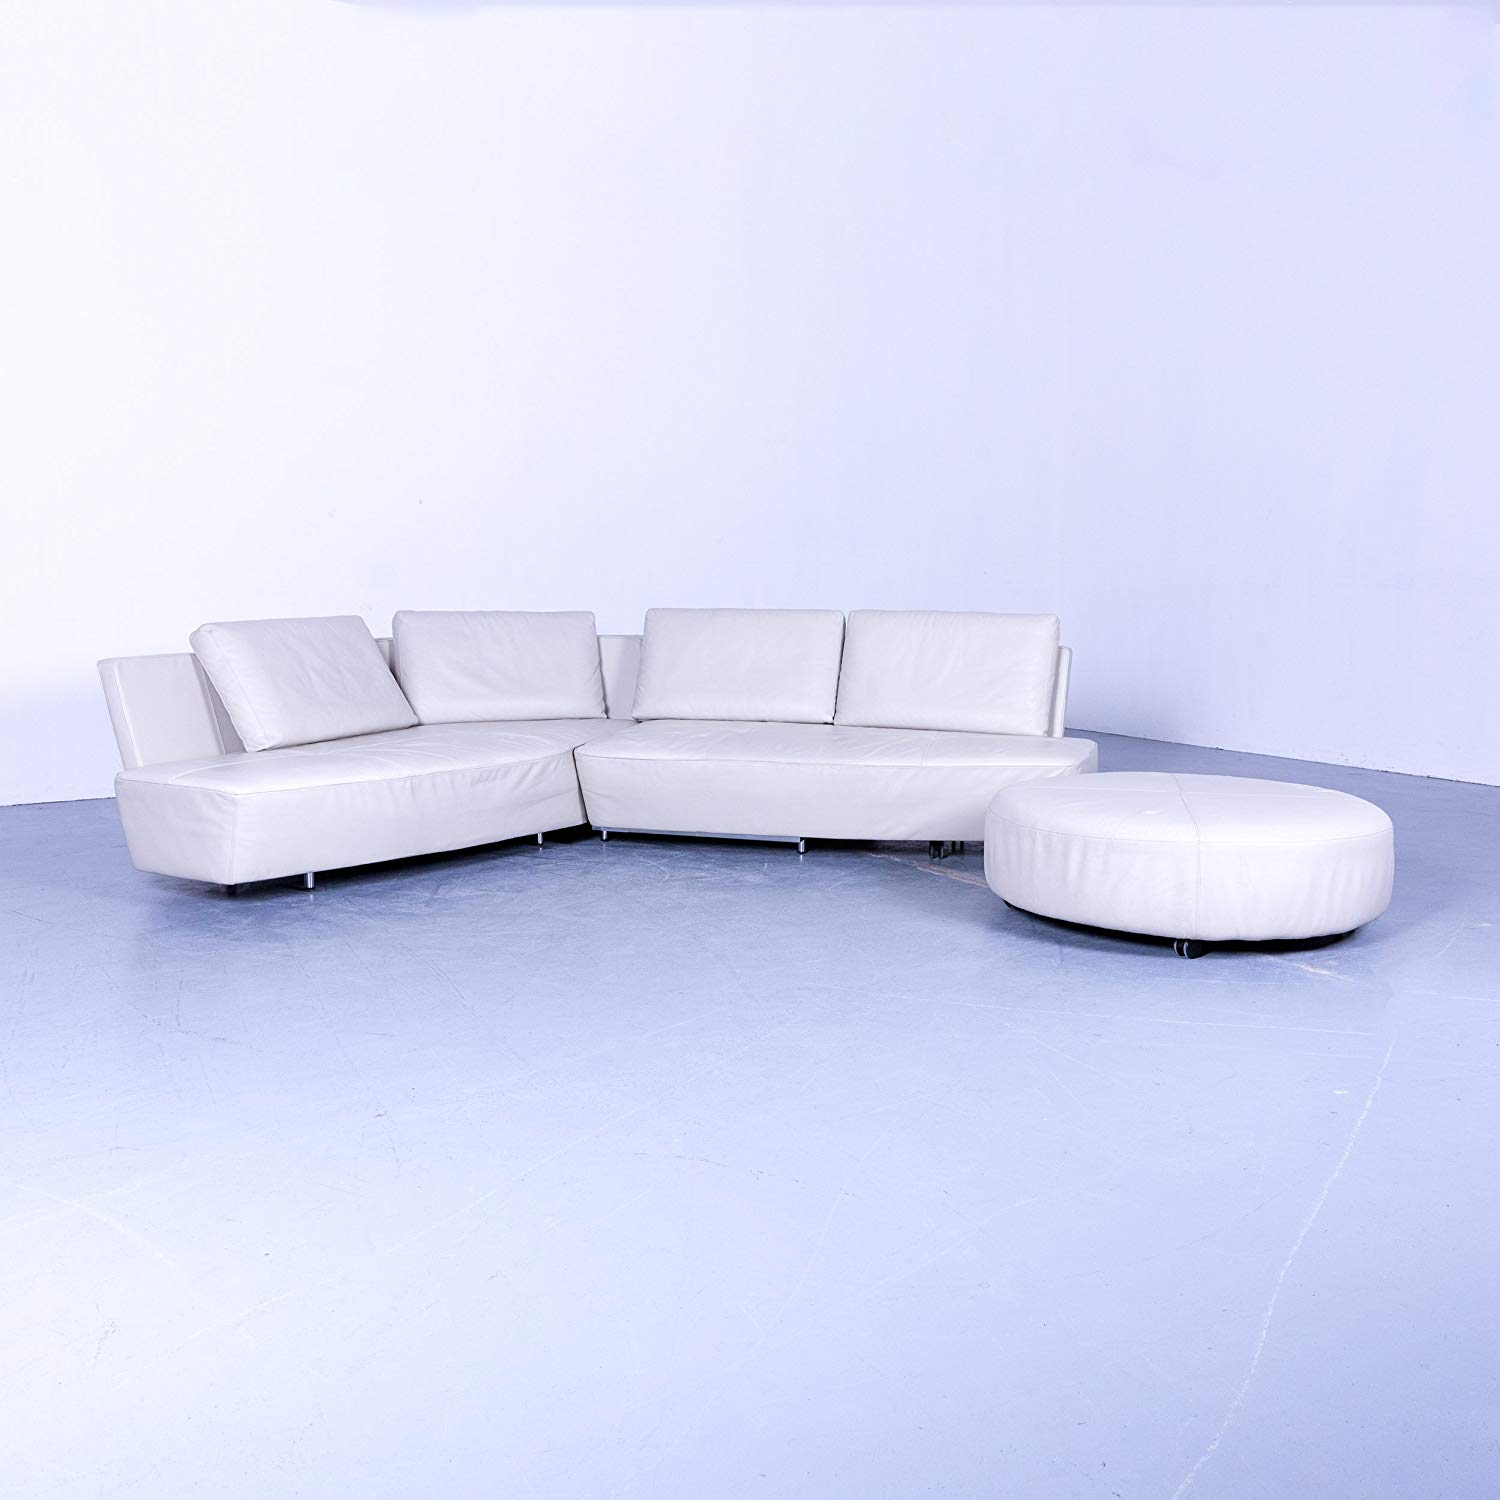 Ecksofa 200x200 Cheap Knoll Couch Find Knoll Couch Deals On Line At Alibaba